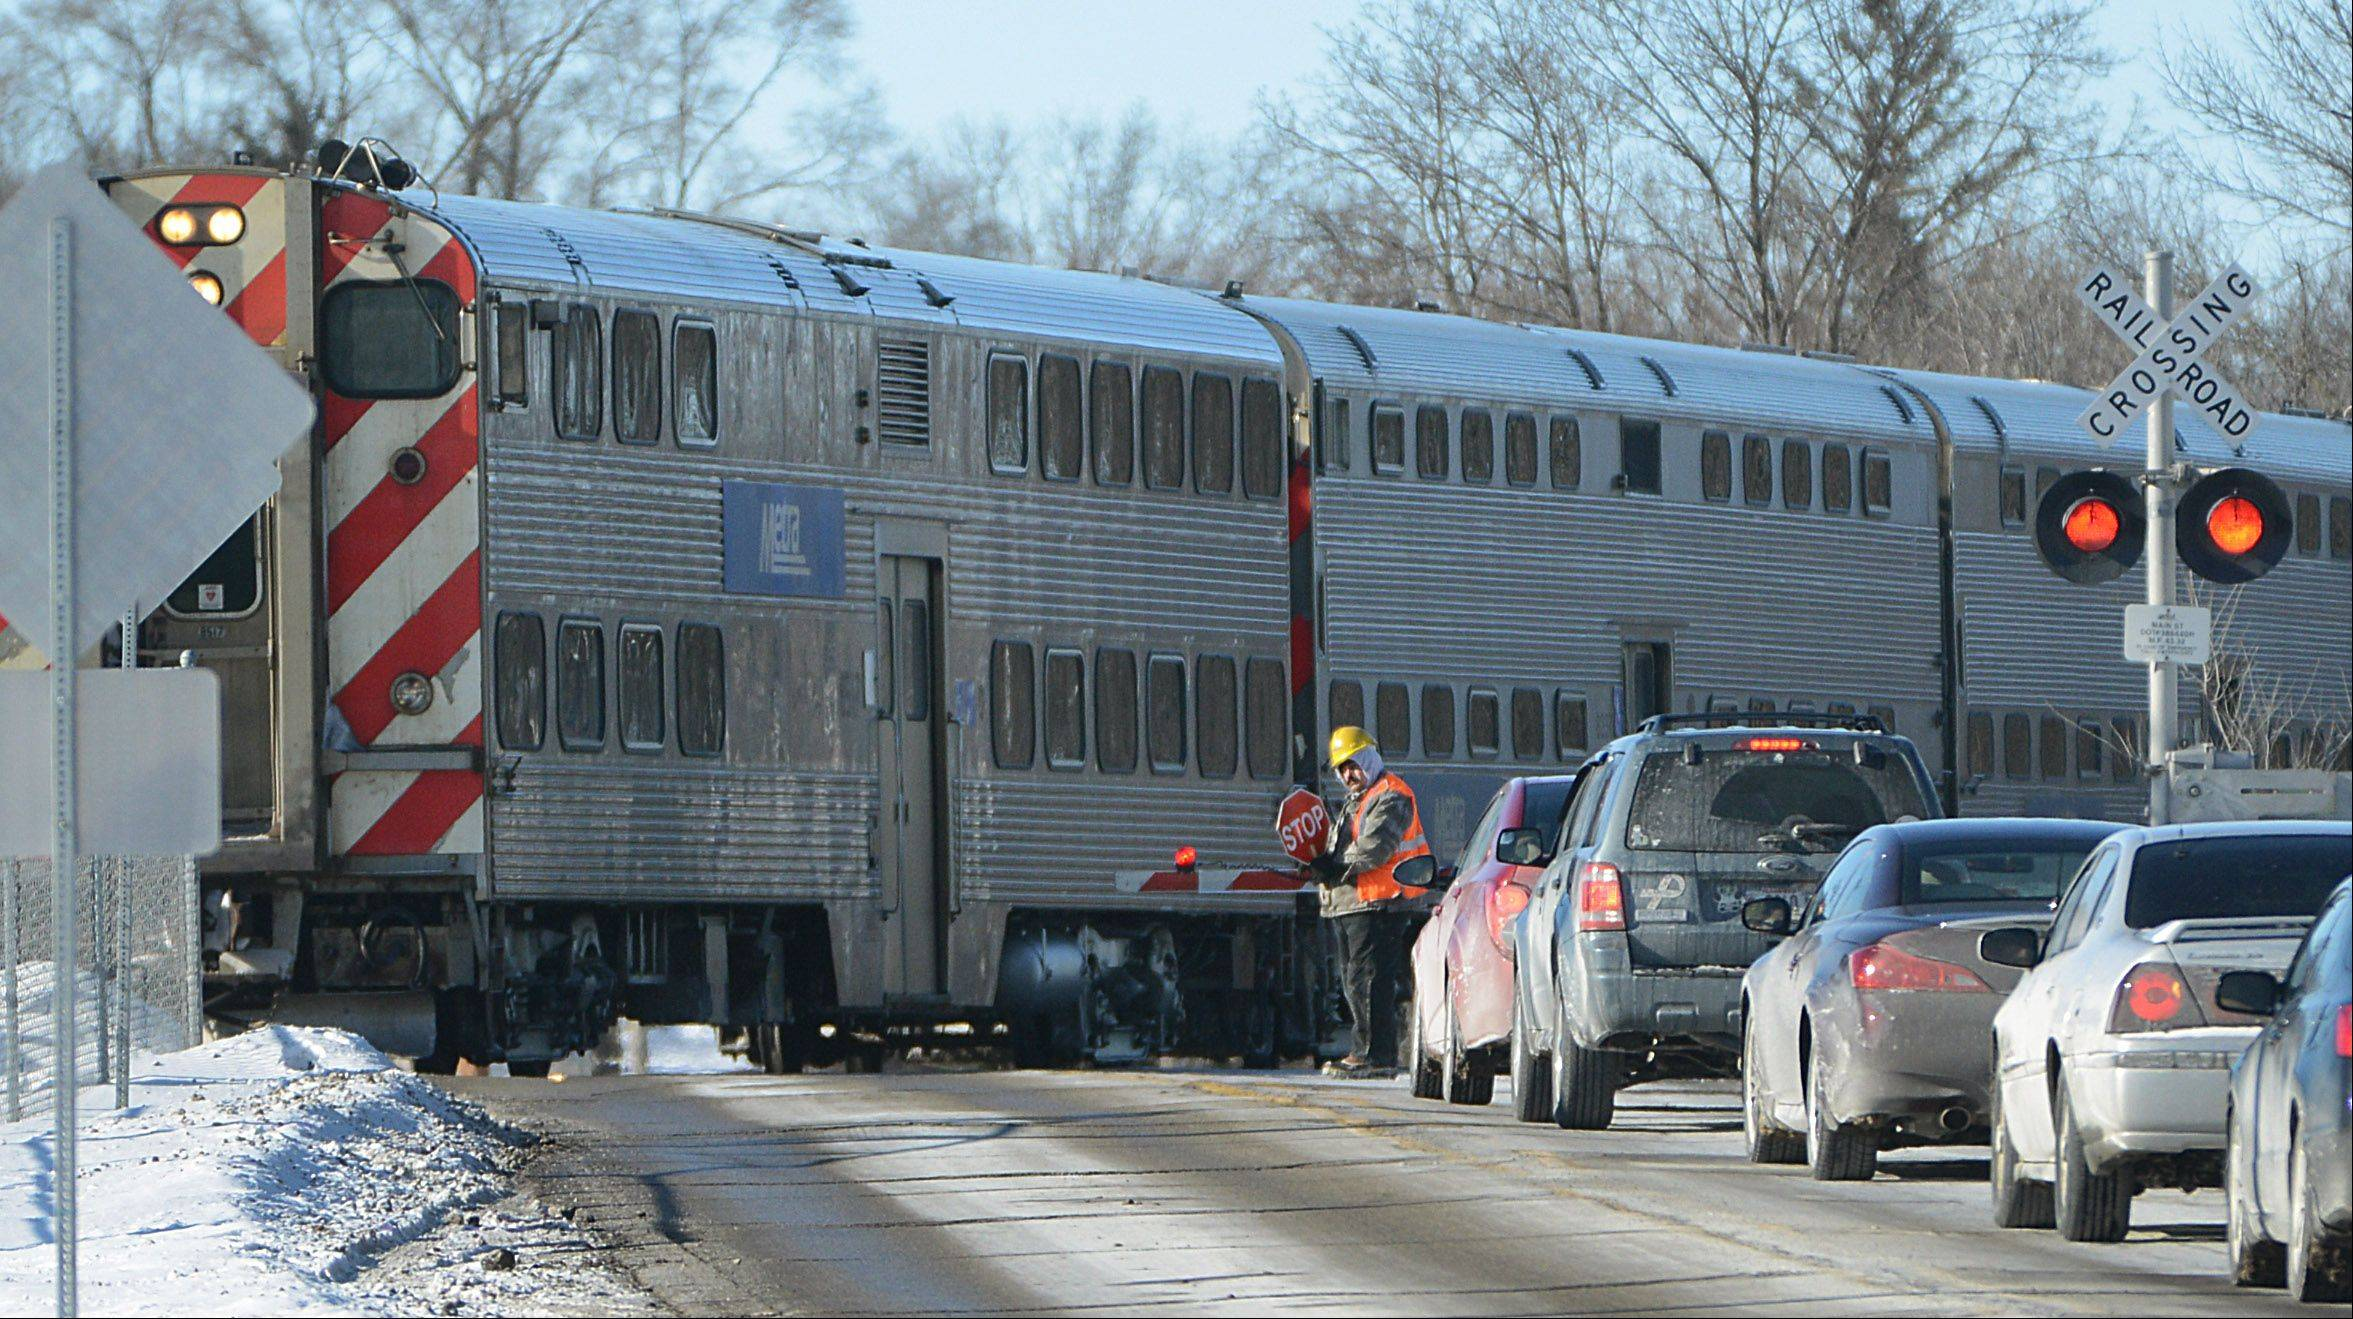 A train passes by railroad officials Thursday as they investigate a fatal crash involving a vehicle and Metra train at the Route 134 crossing in Round Lake Park. A man and his daughter were killed in the crash Wednesday evening.